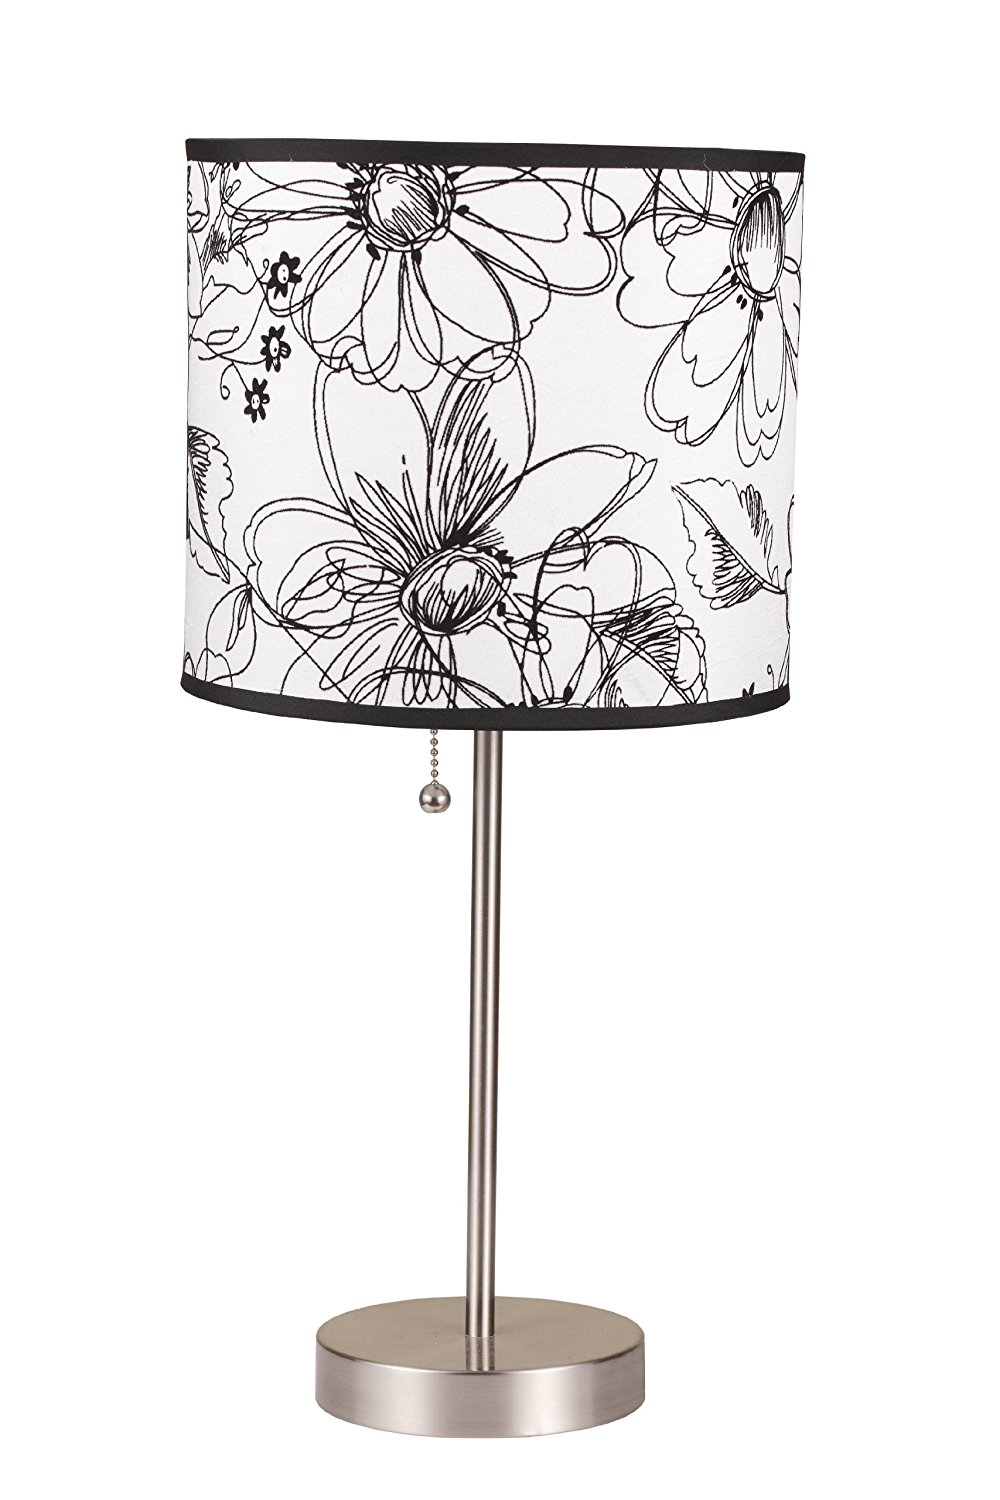 International 8312b 19 inch brushed steel table lamp with damask international 8312b 19 inch brushed steel table lamp with damask print shade 6235sn black print 2025 clipon 19h give 15inch degree 19 it square 360 aloadofball Gallery